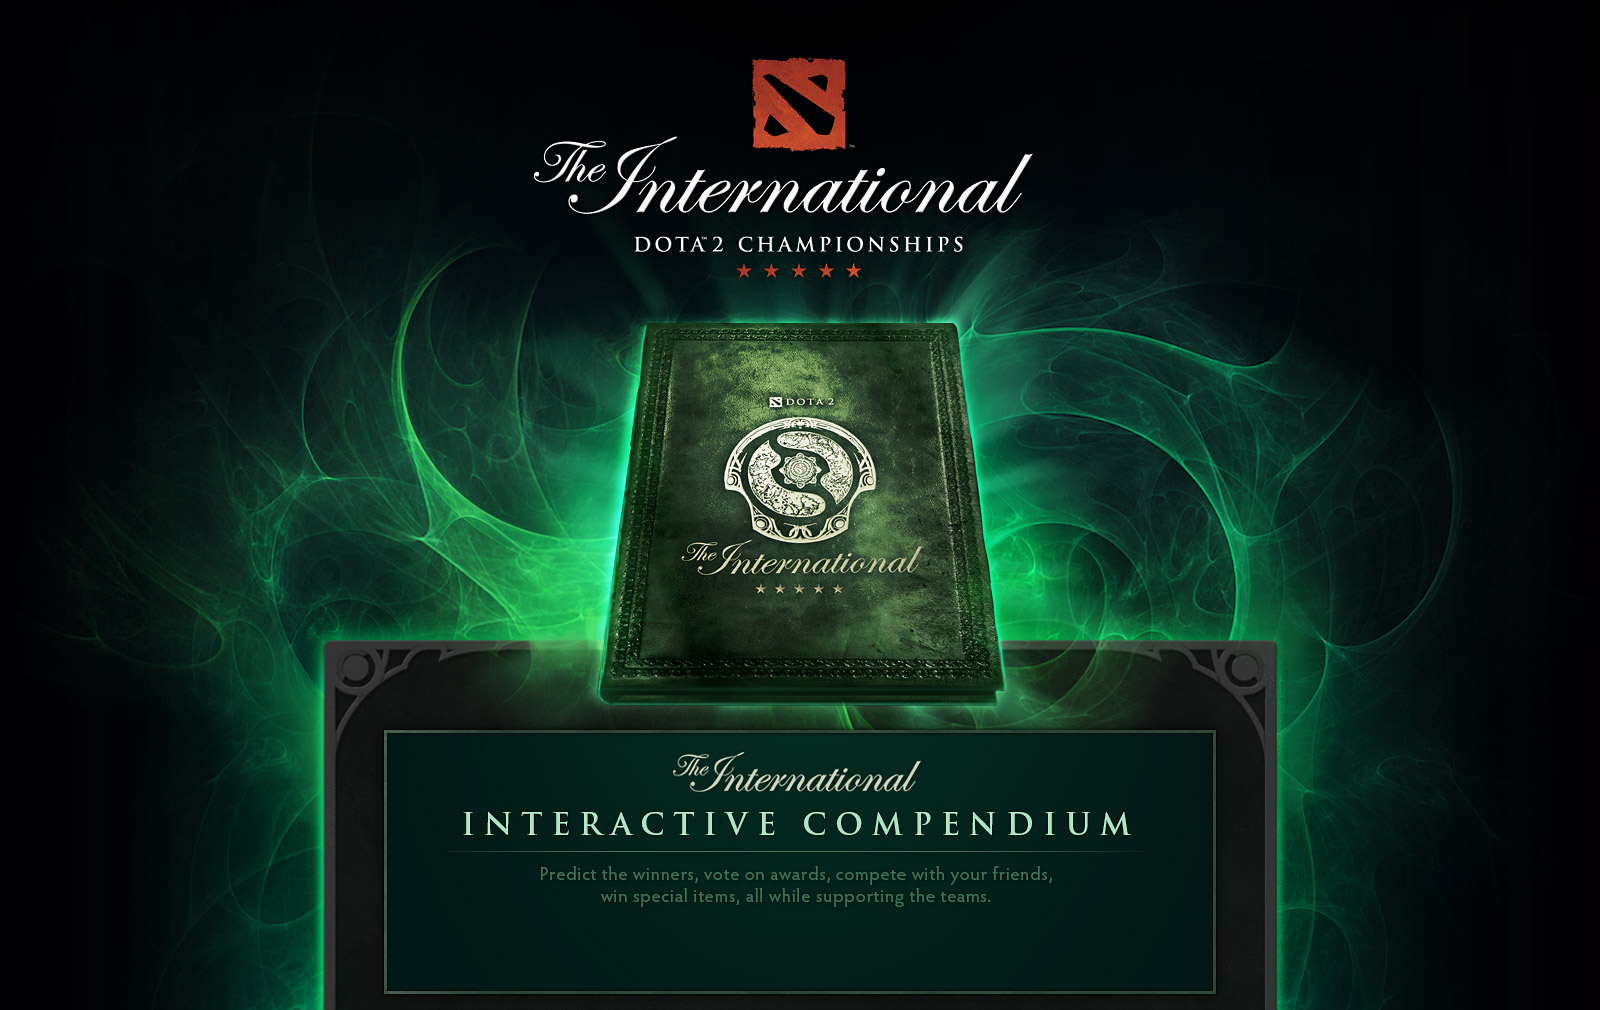 The Interactive Compendium